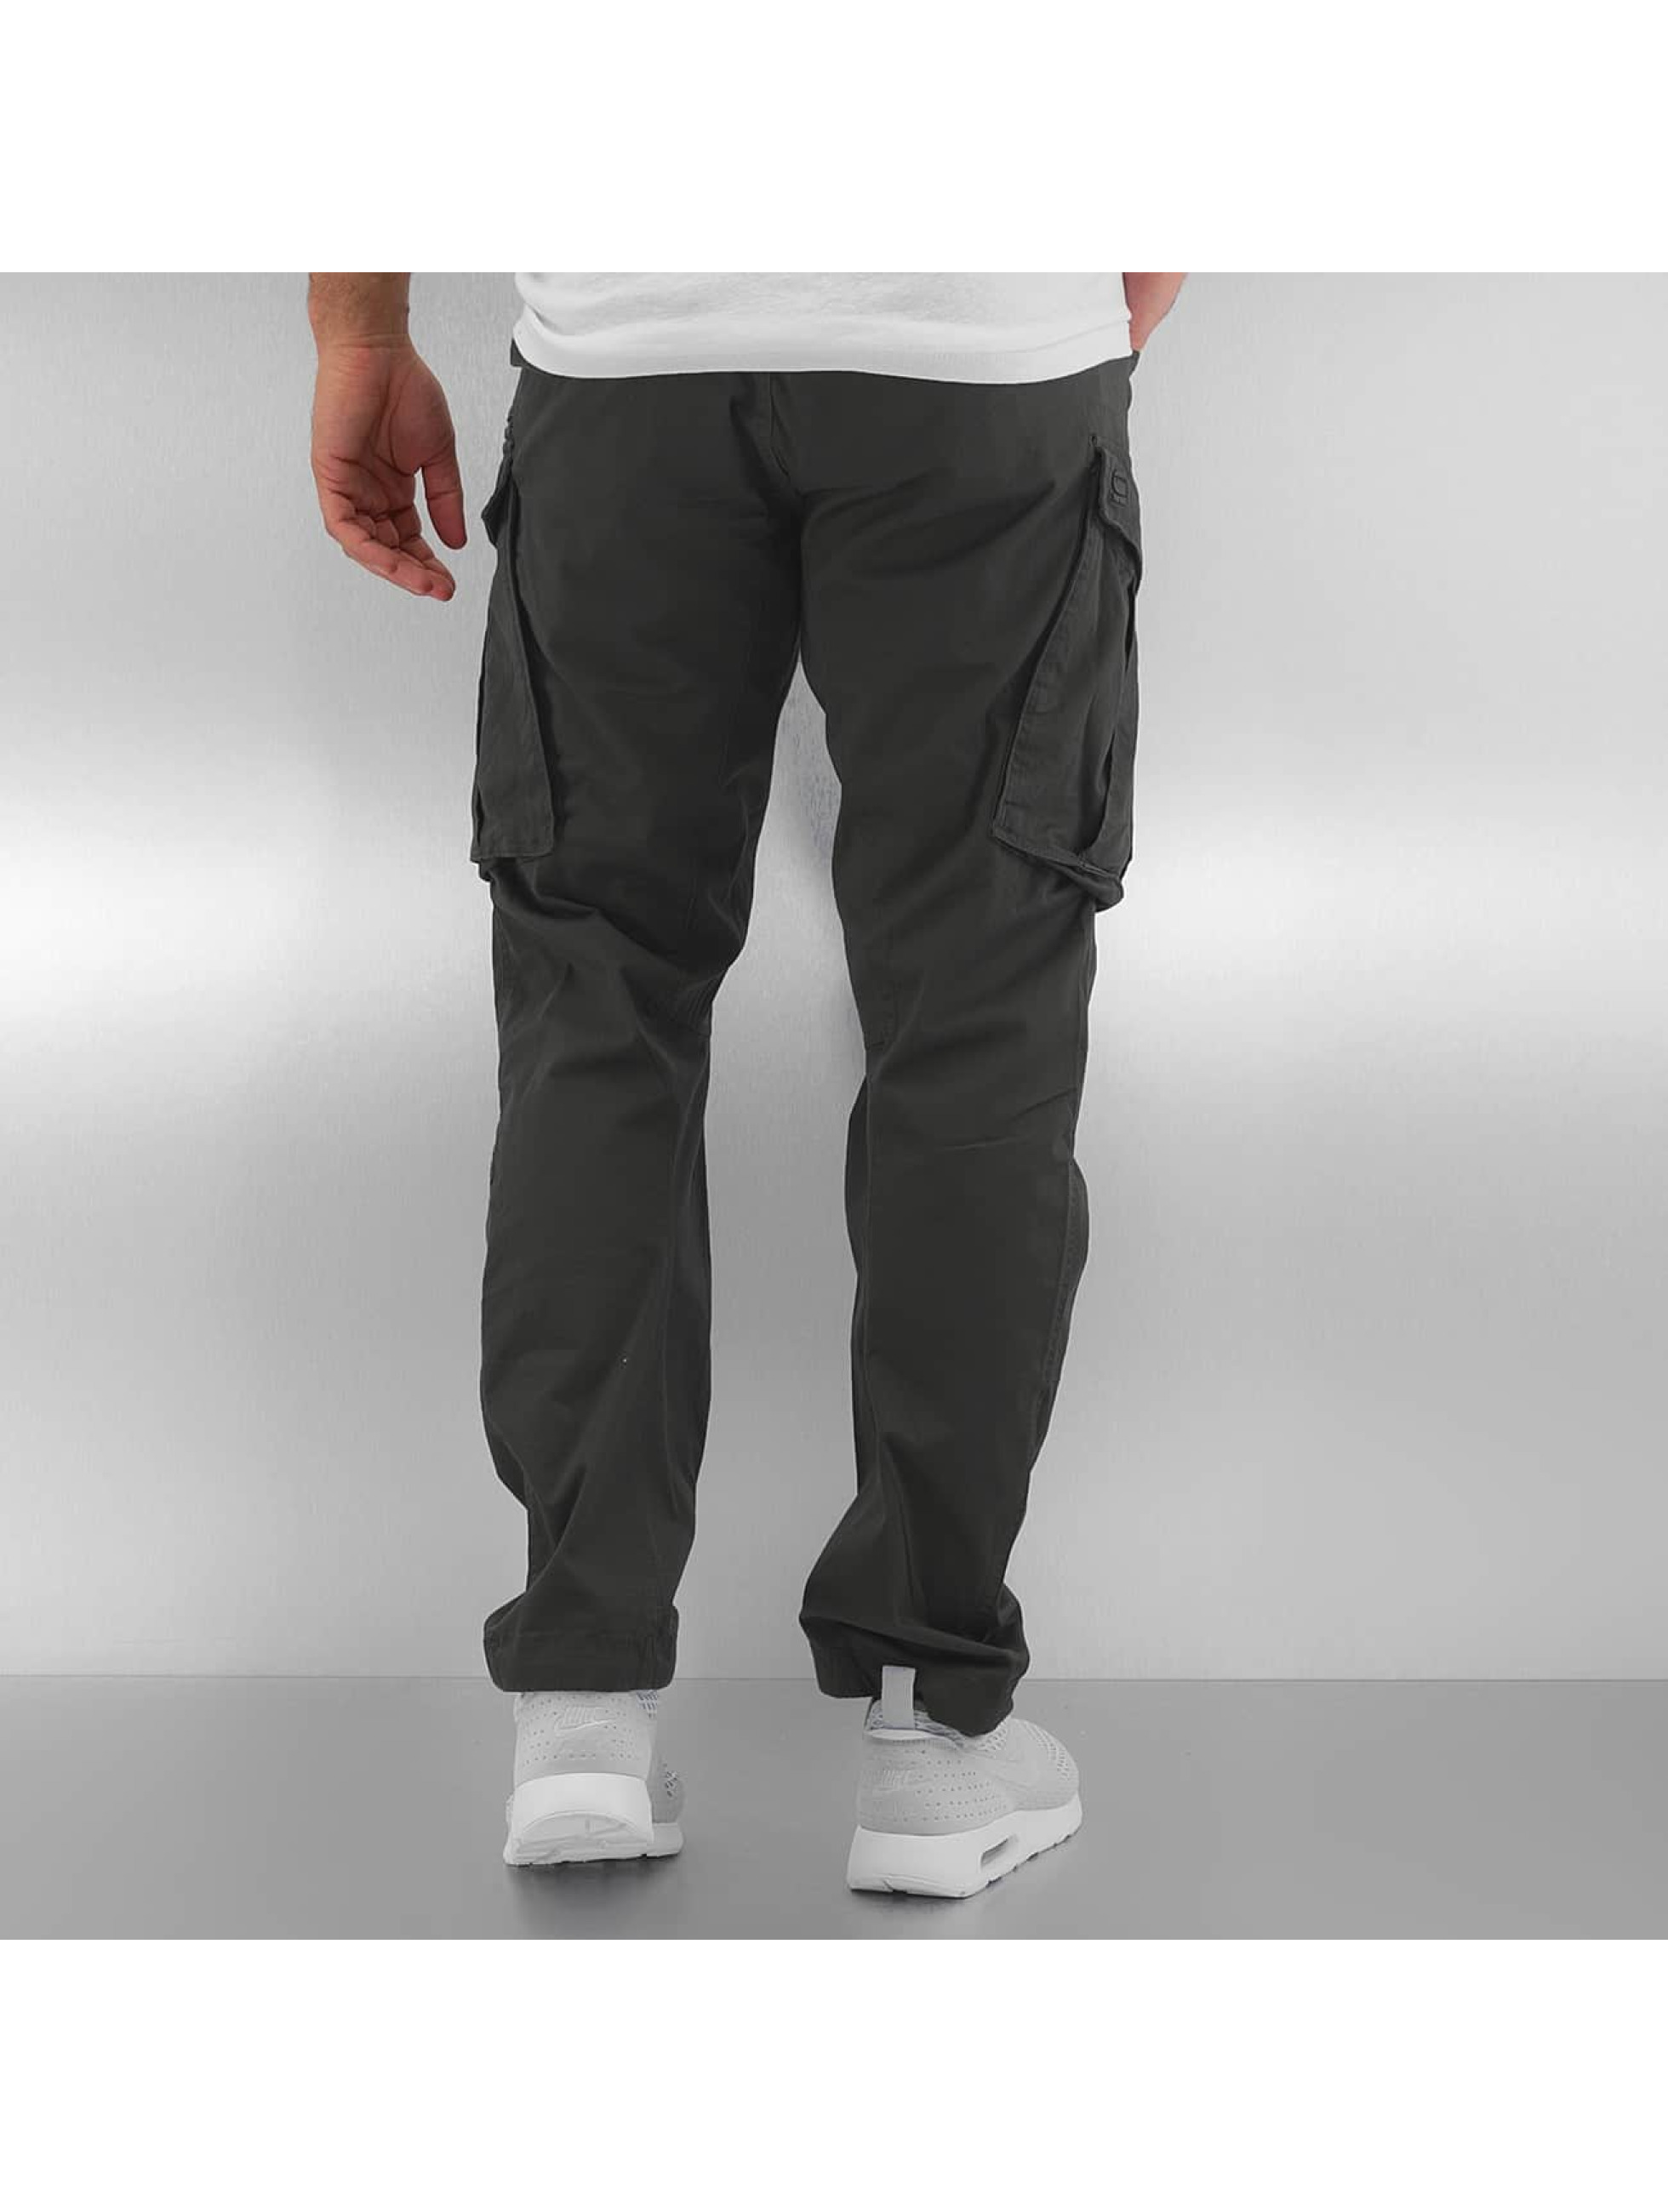 G-Star Cargohose Rovic Zip 3D Tapered grau